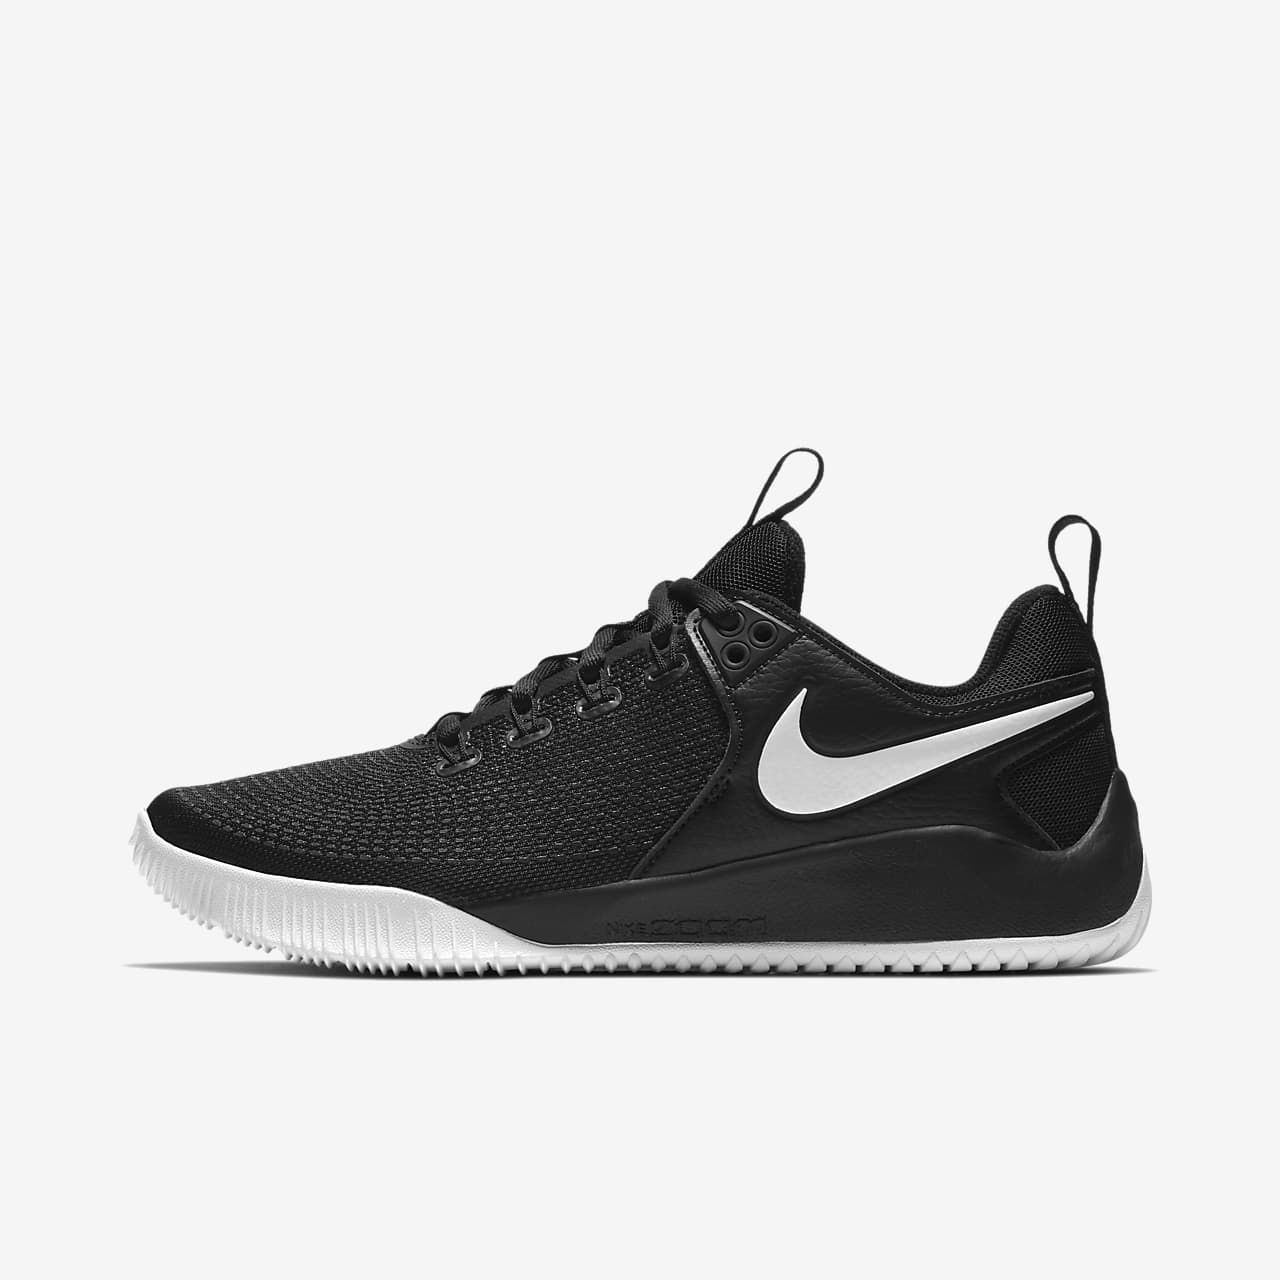 Low Resolution Nike Zoom HyperAce 2 Women s Volleyball Shoe Nike Zoom  HyperAce 2 Women s Volleyball Shoe 12f432445